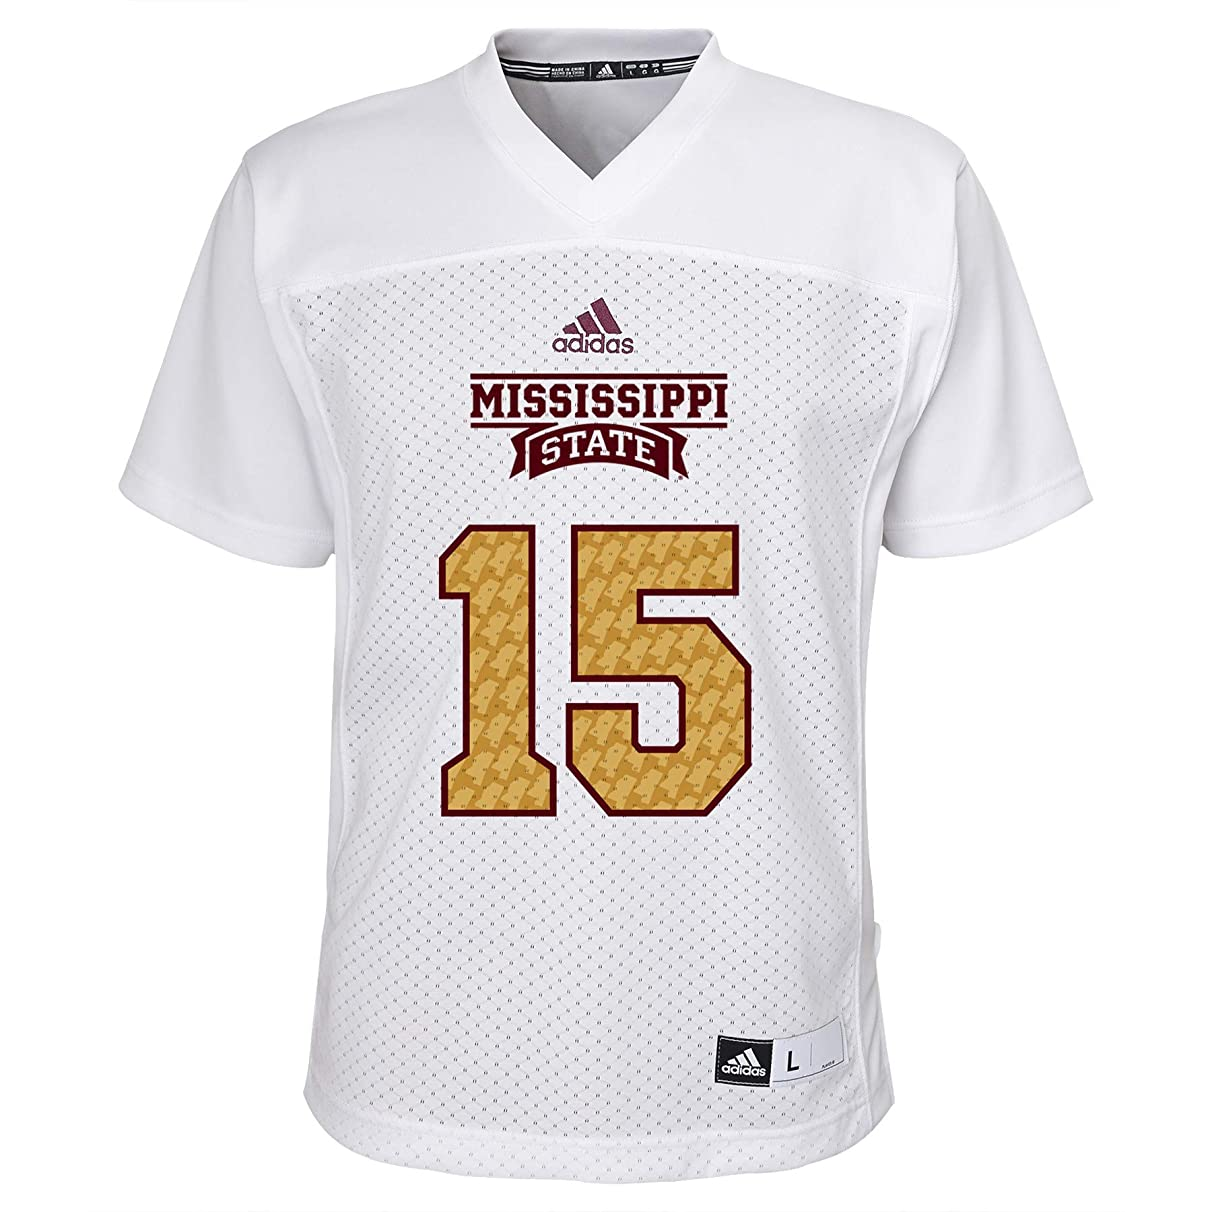 adidas Youth Mississippi State Bulldogs # 15 Egg Bowl Football Jersey - White